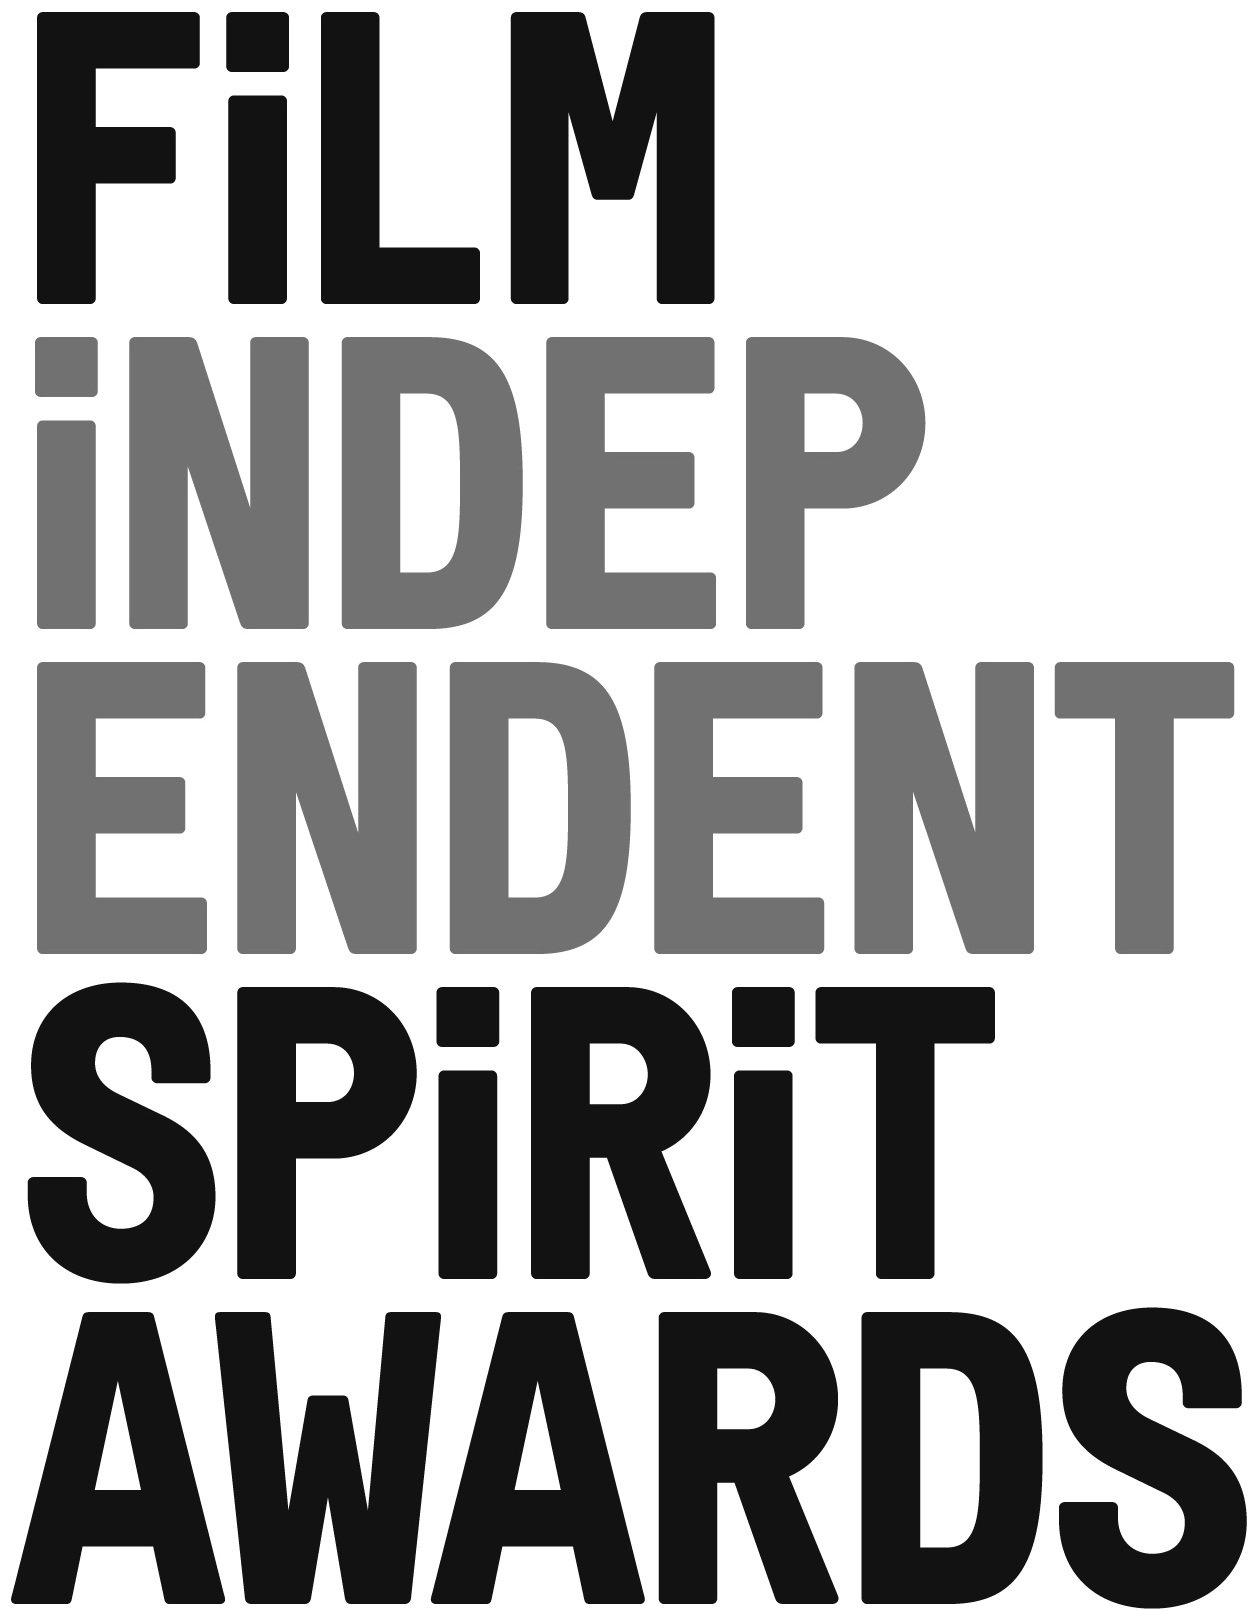 Fi_SpiritAwards_Primary_Logo-BW.jpg